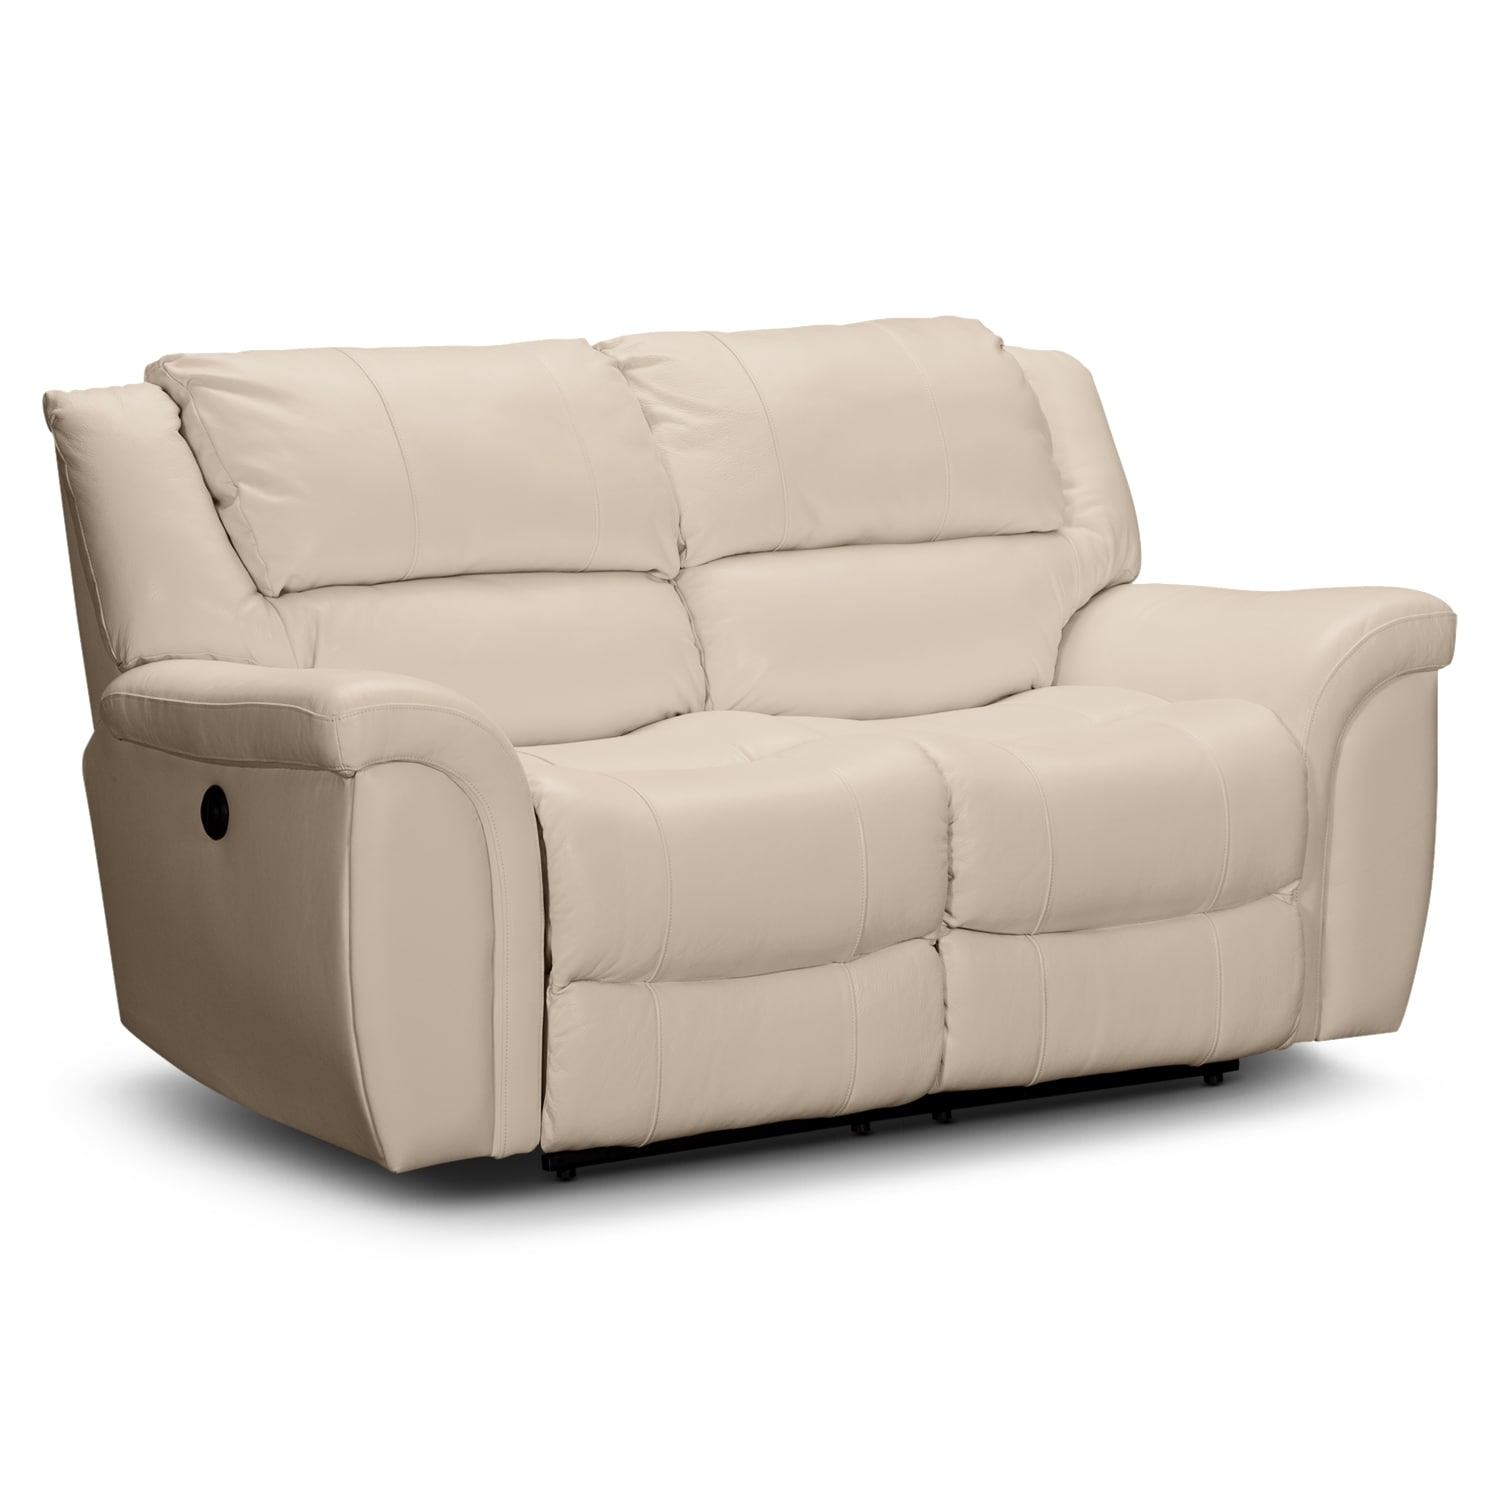 Furnishings for every room online and store furniture sales value city furniture Leather loveseat recliners